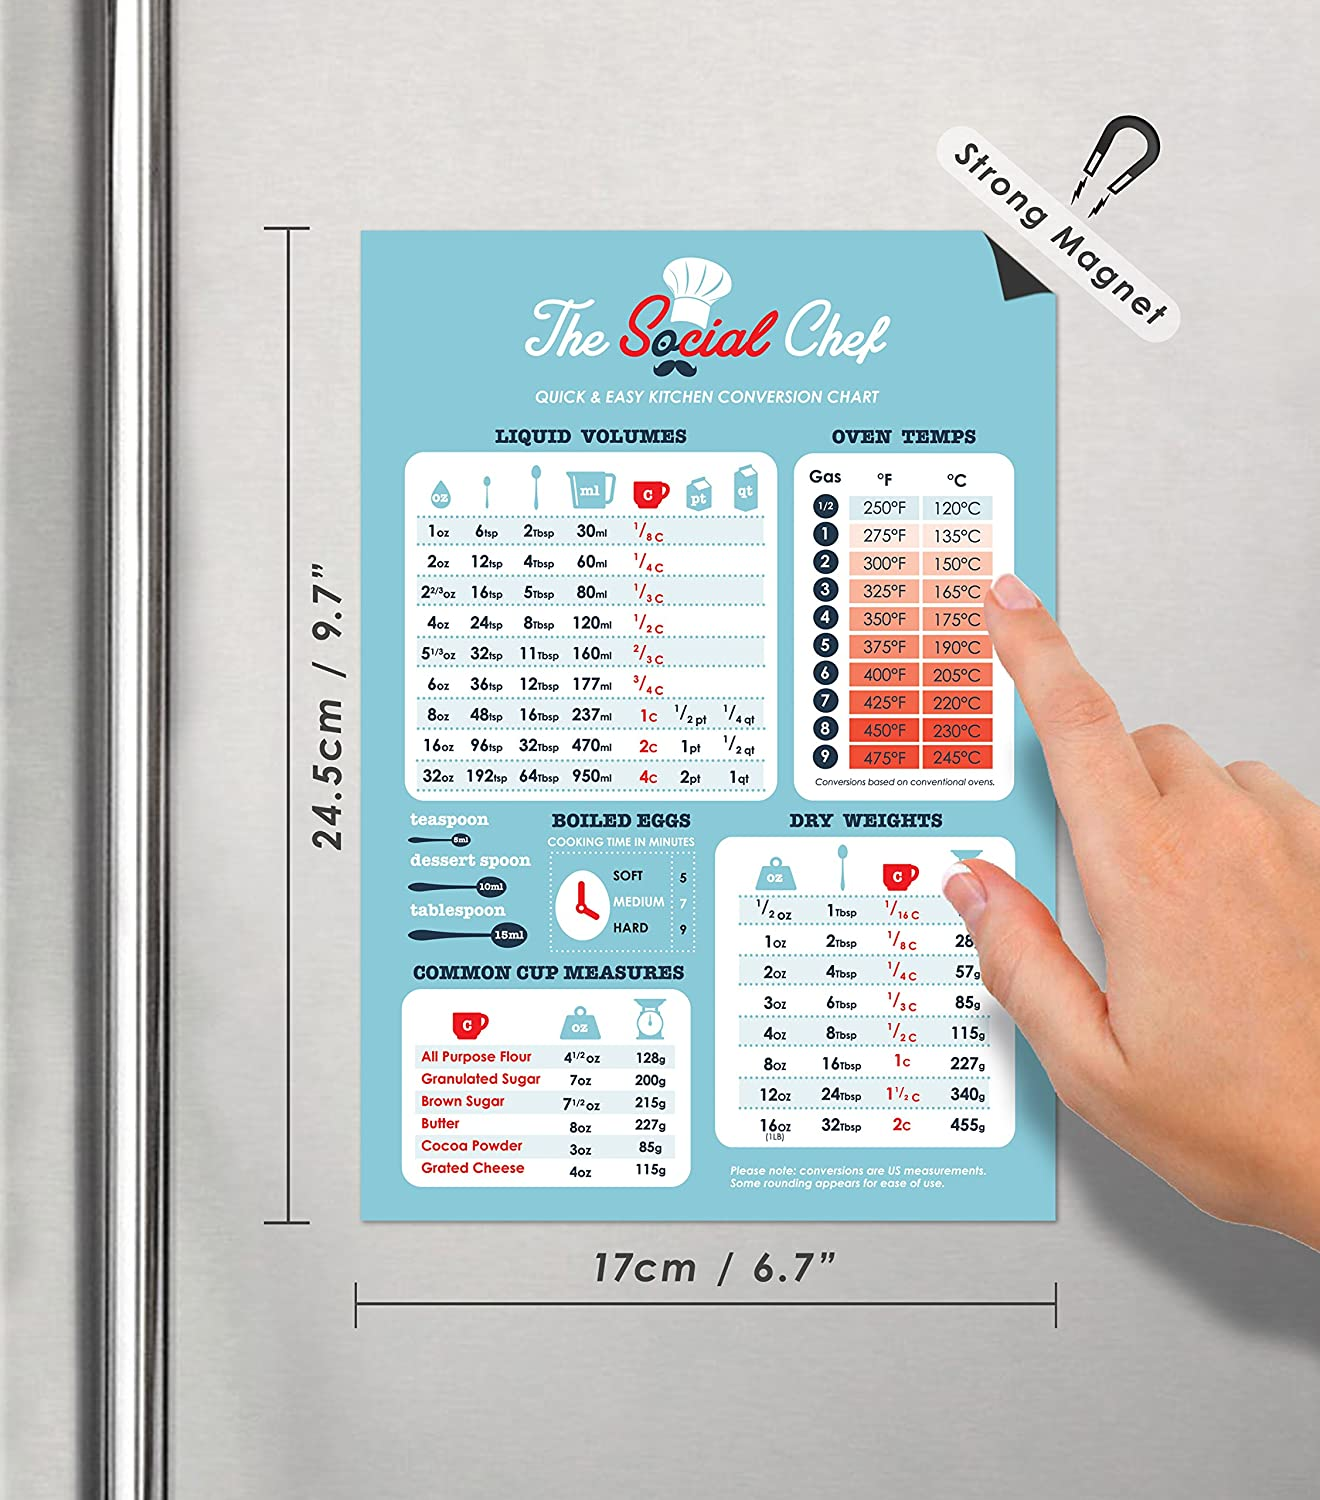 Amazon magnetic kitchen conversion chart by the social chef amazon magnetic kitchen conversion chart by the social chef kitchen dining nvjuhfo Gallery